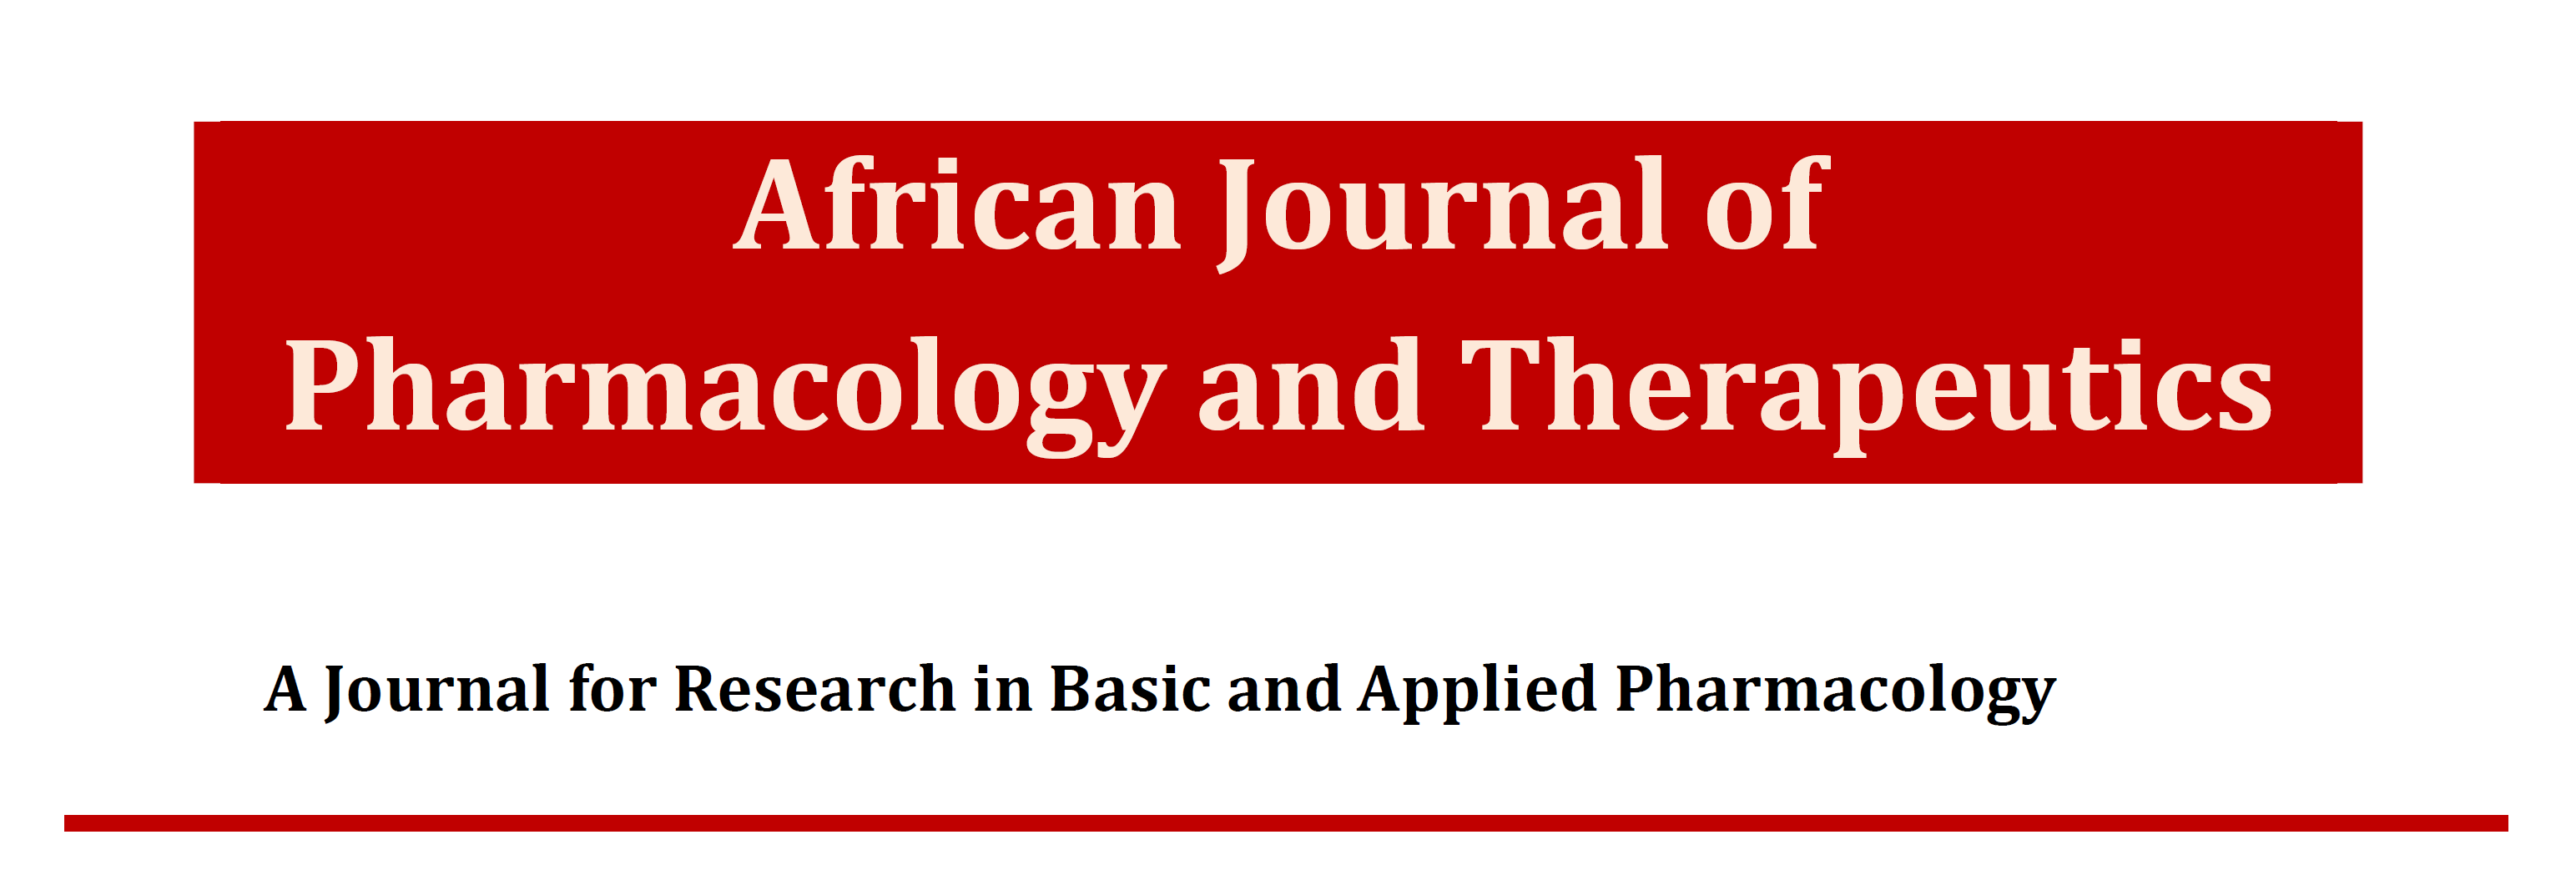 The African Journal of Pharmacology and Therapeutics